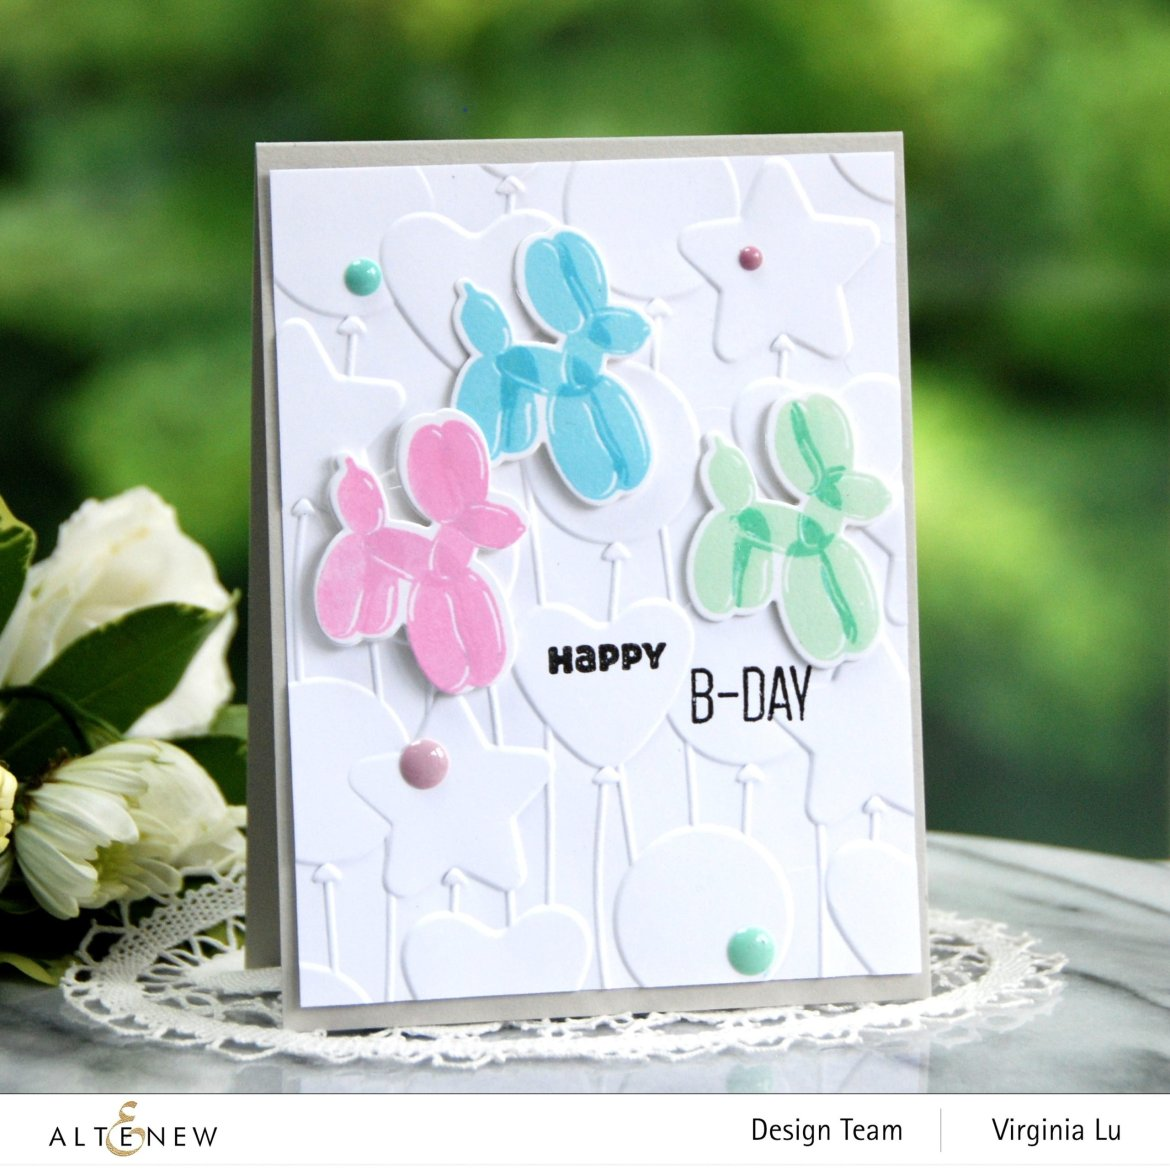 Altenew-MD Happy Birthday-Bunches of Balloons 3D Embossing Folder -001